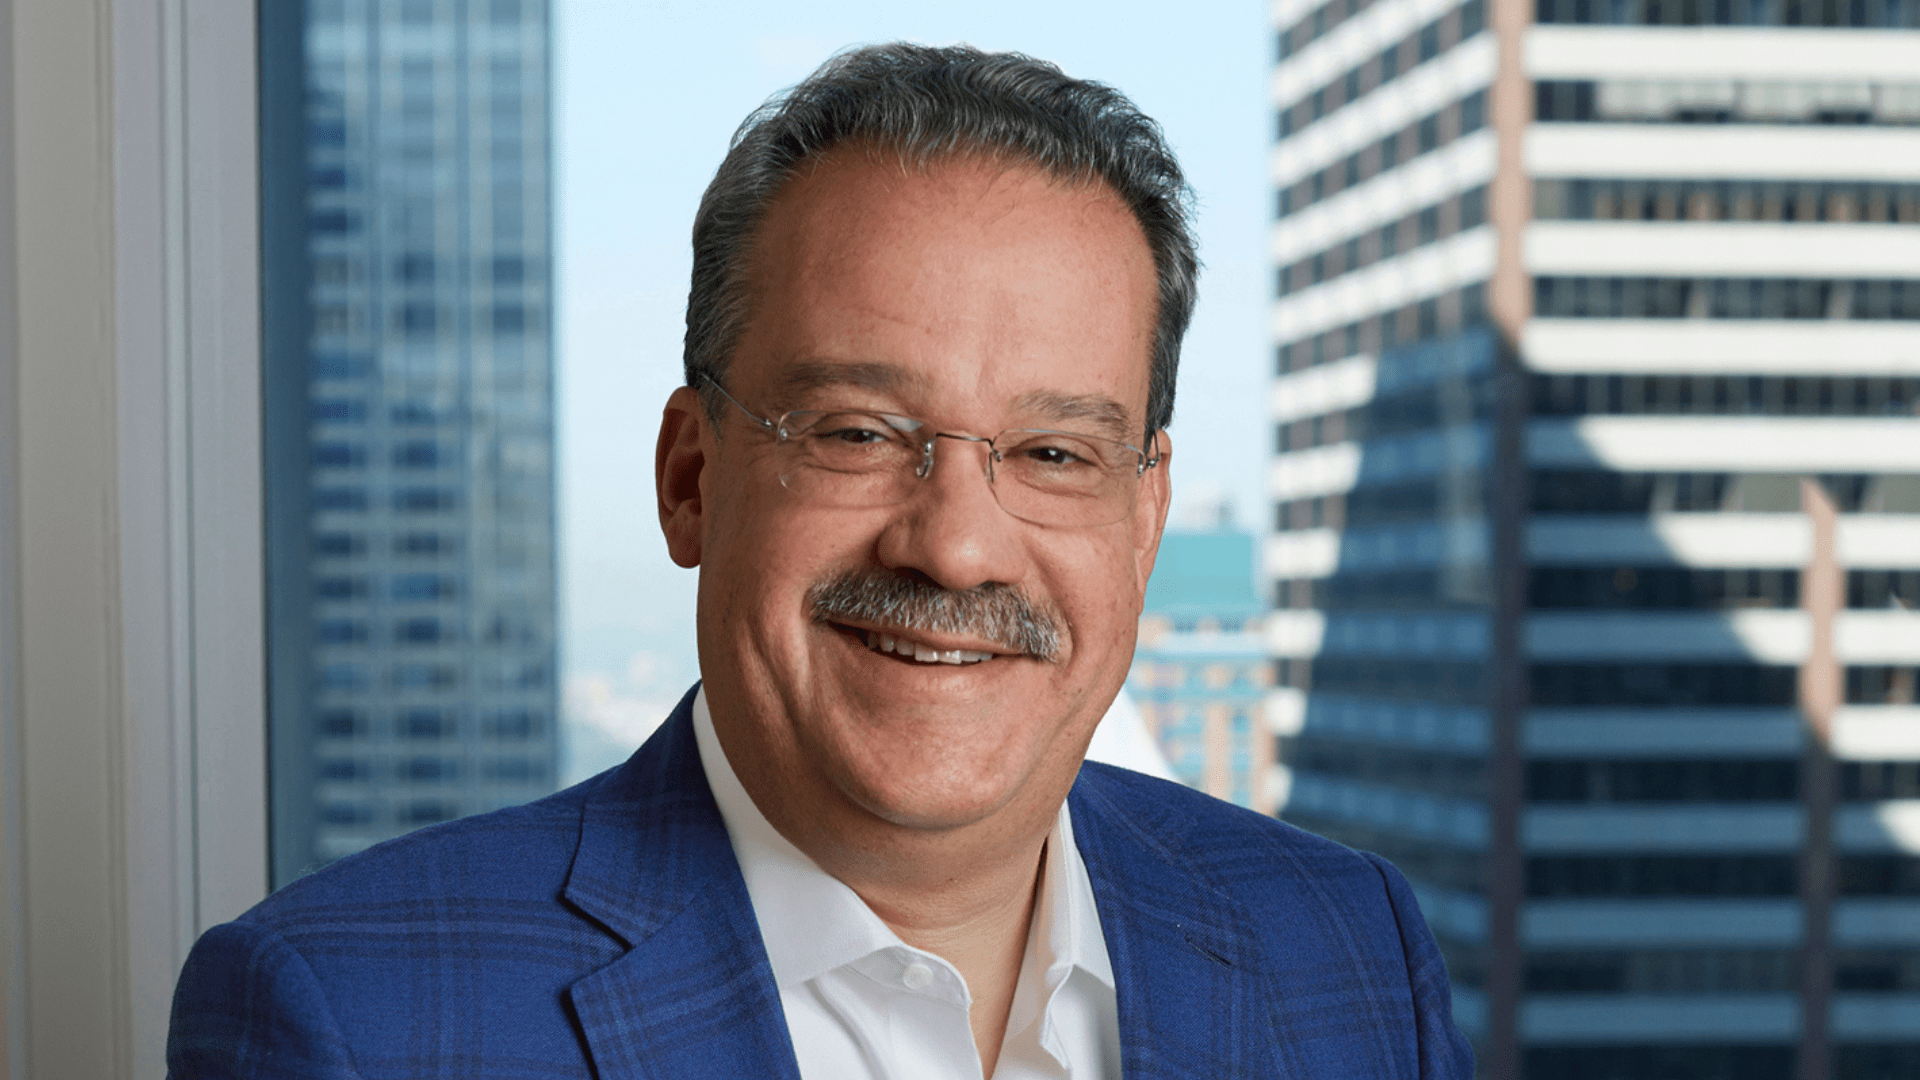 Marcos Rodriguez, Chairman and CEO of Palladium Equity Partners